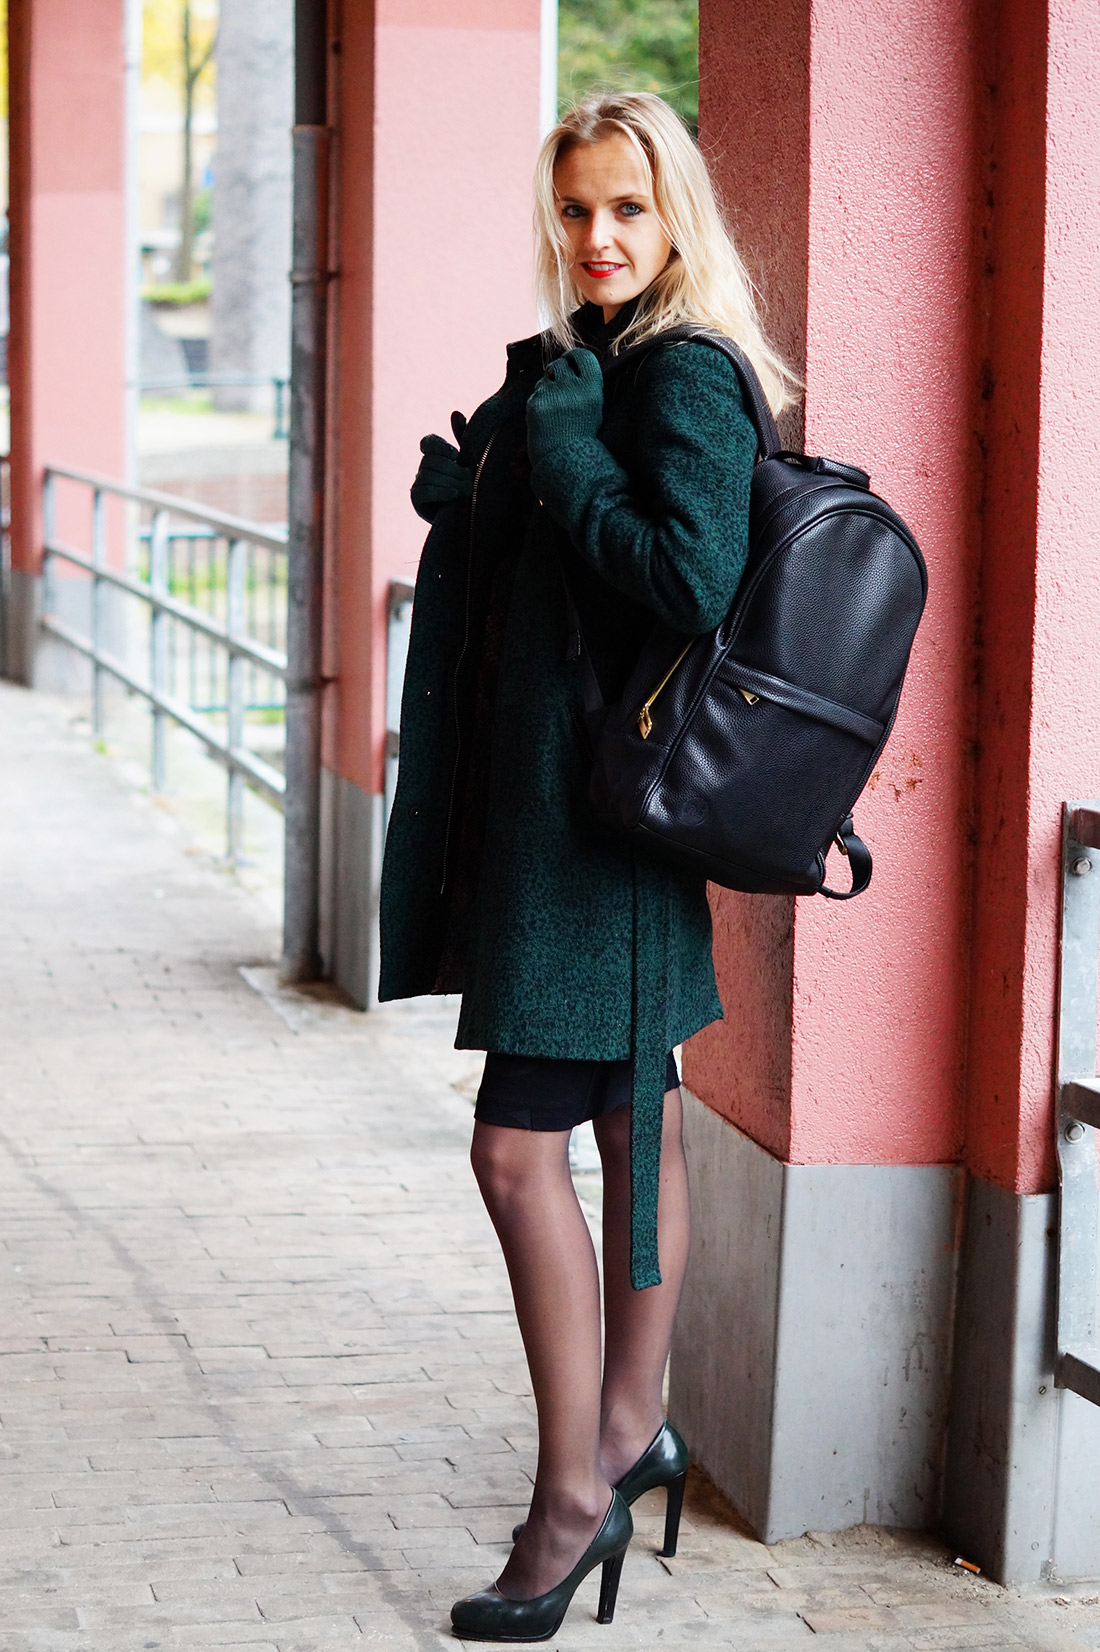 Bag-at-You---Fashion-blog---Mi-Pac-Backpack-Maxwell-Black---Green-Coat---Elegant-Street-Style-in-Amsterdam